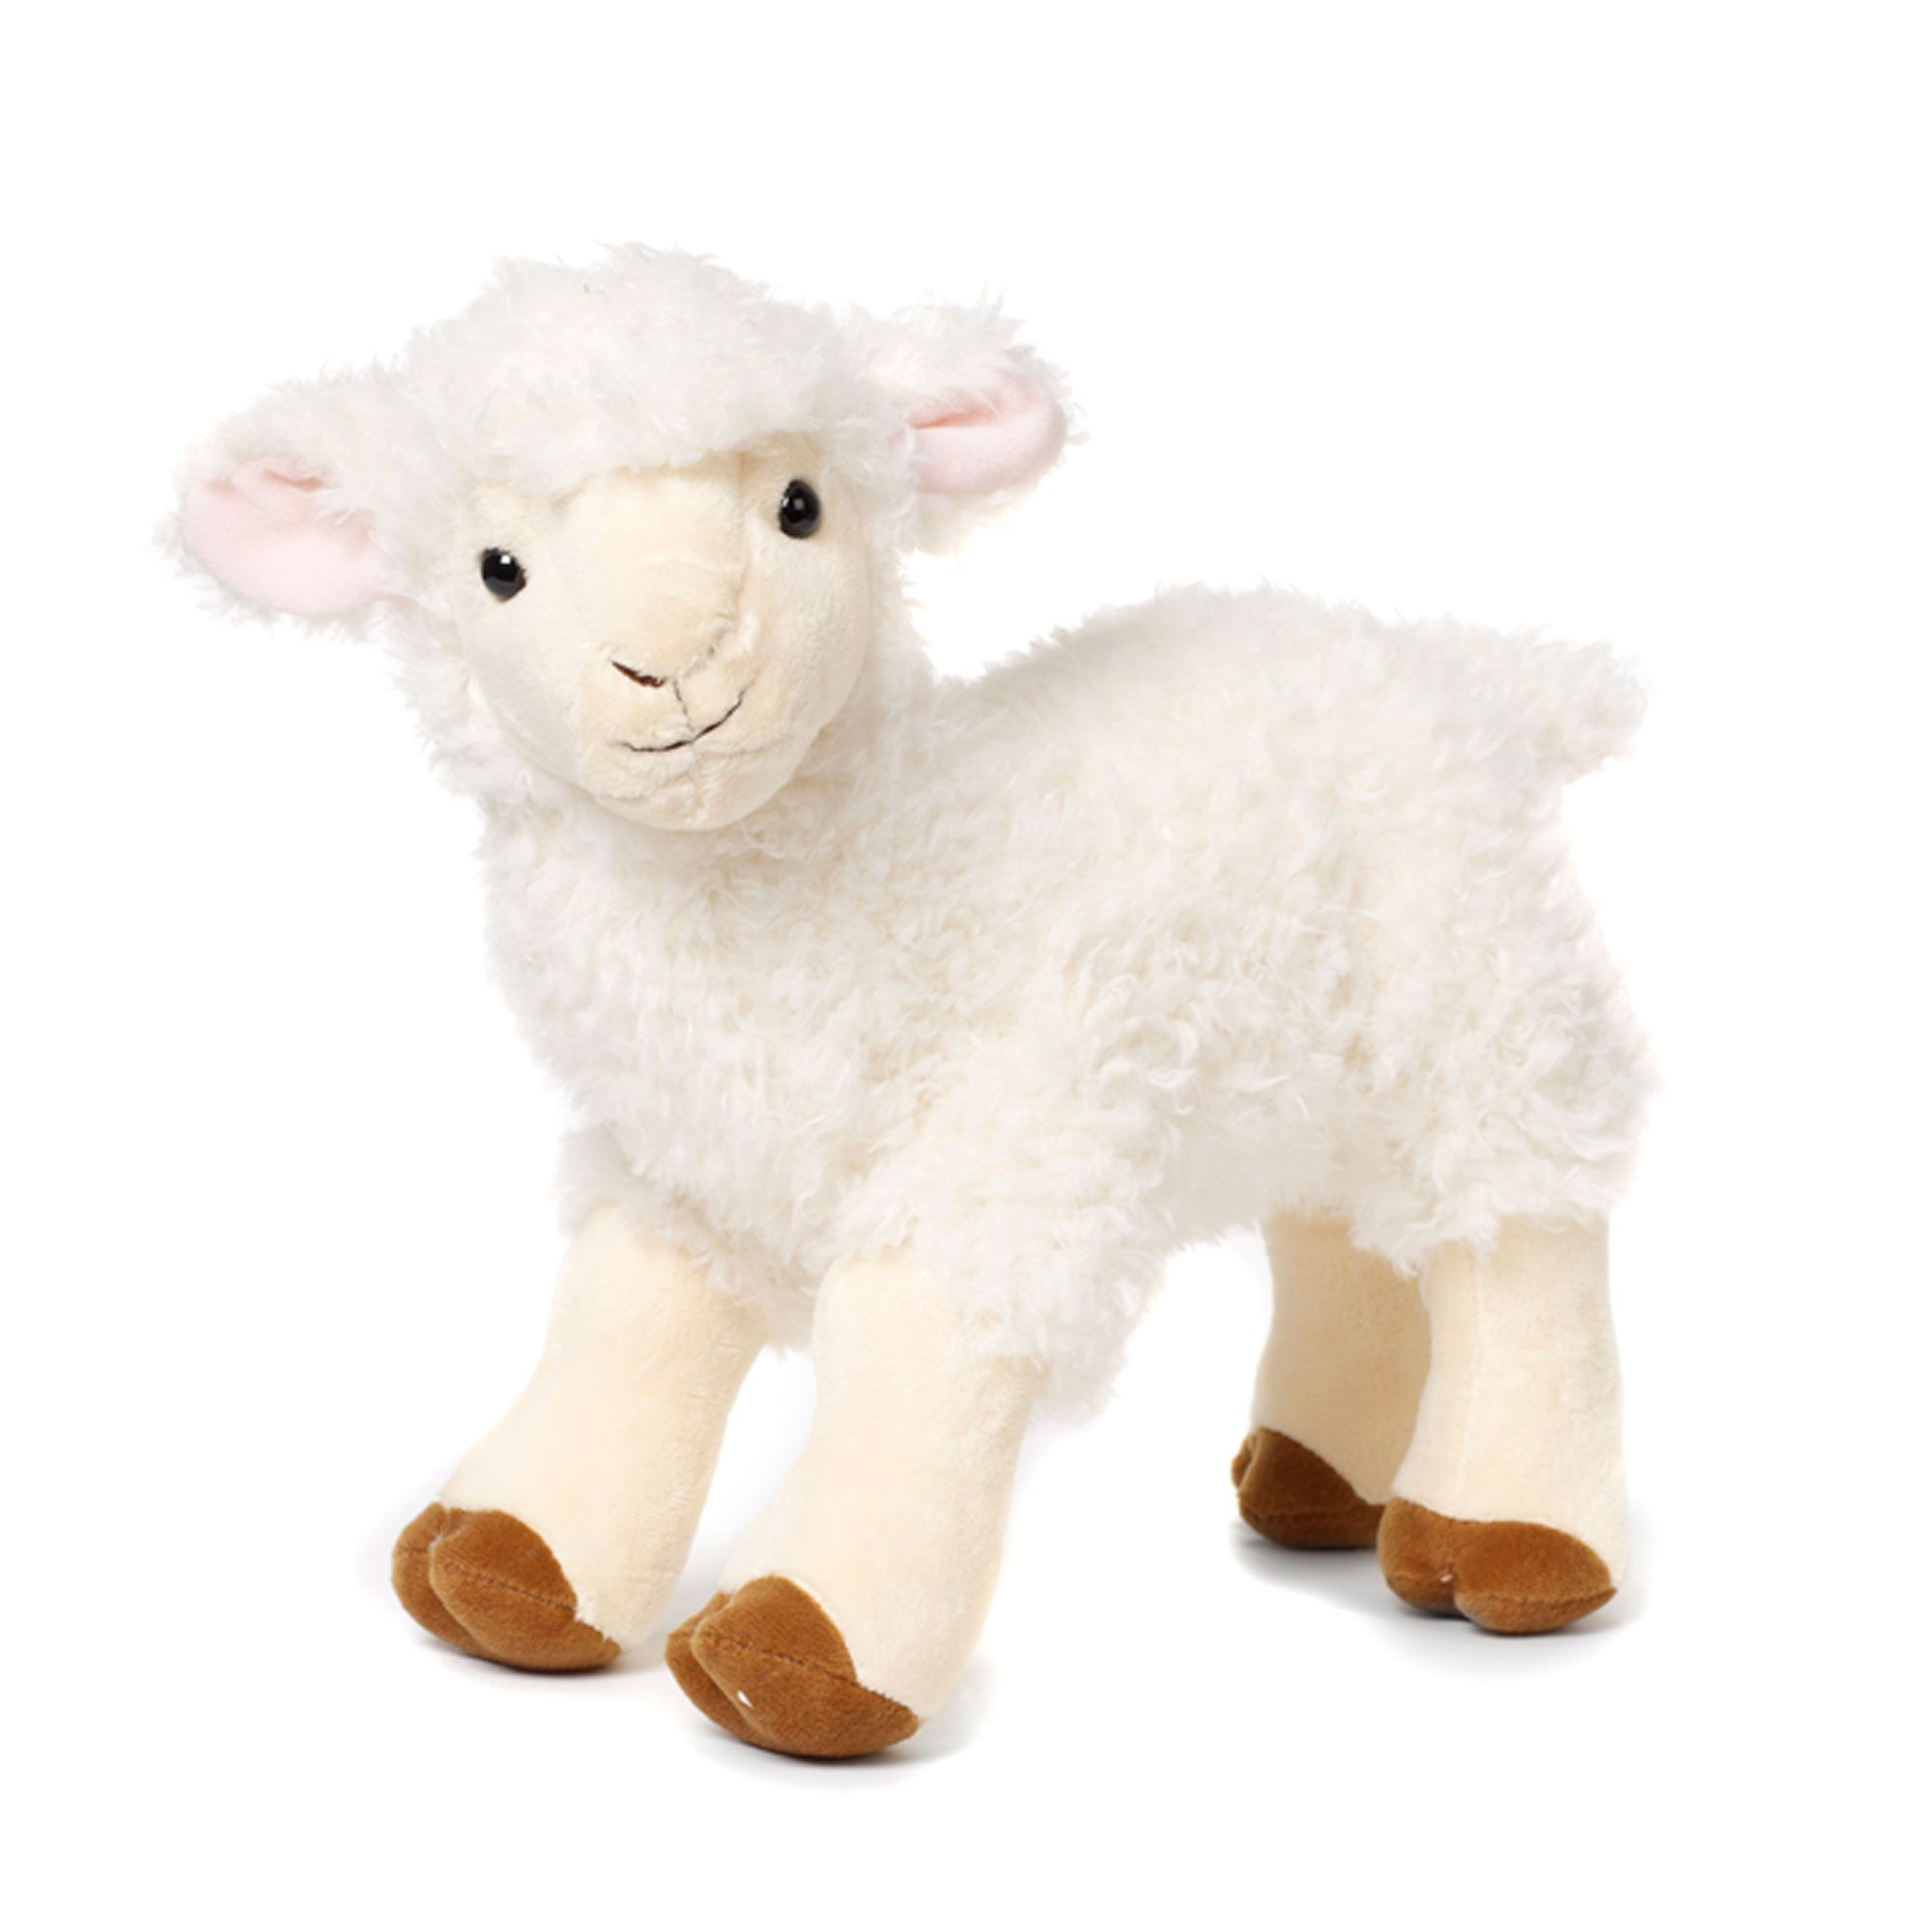 Minty soft lamb toy 14 inch